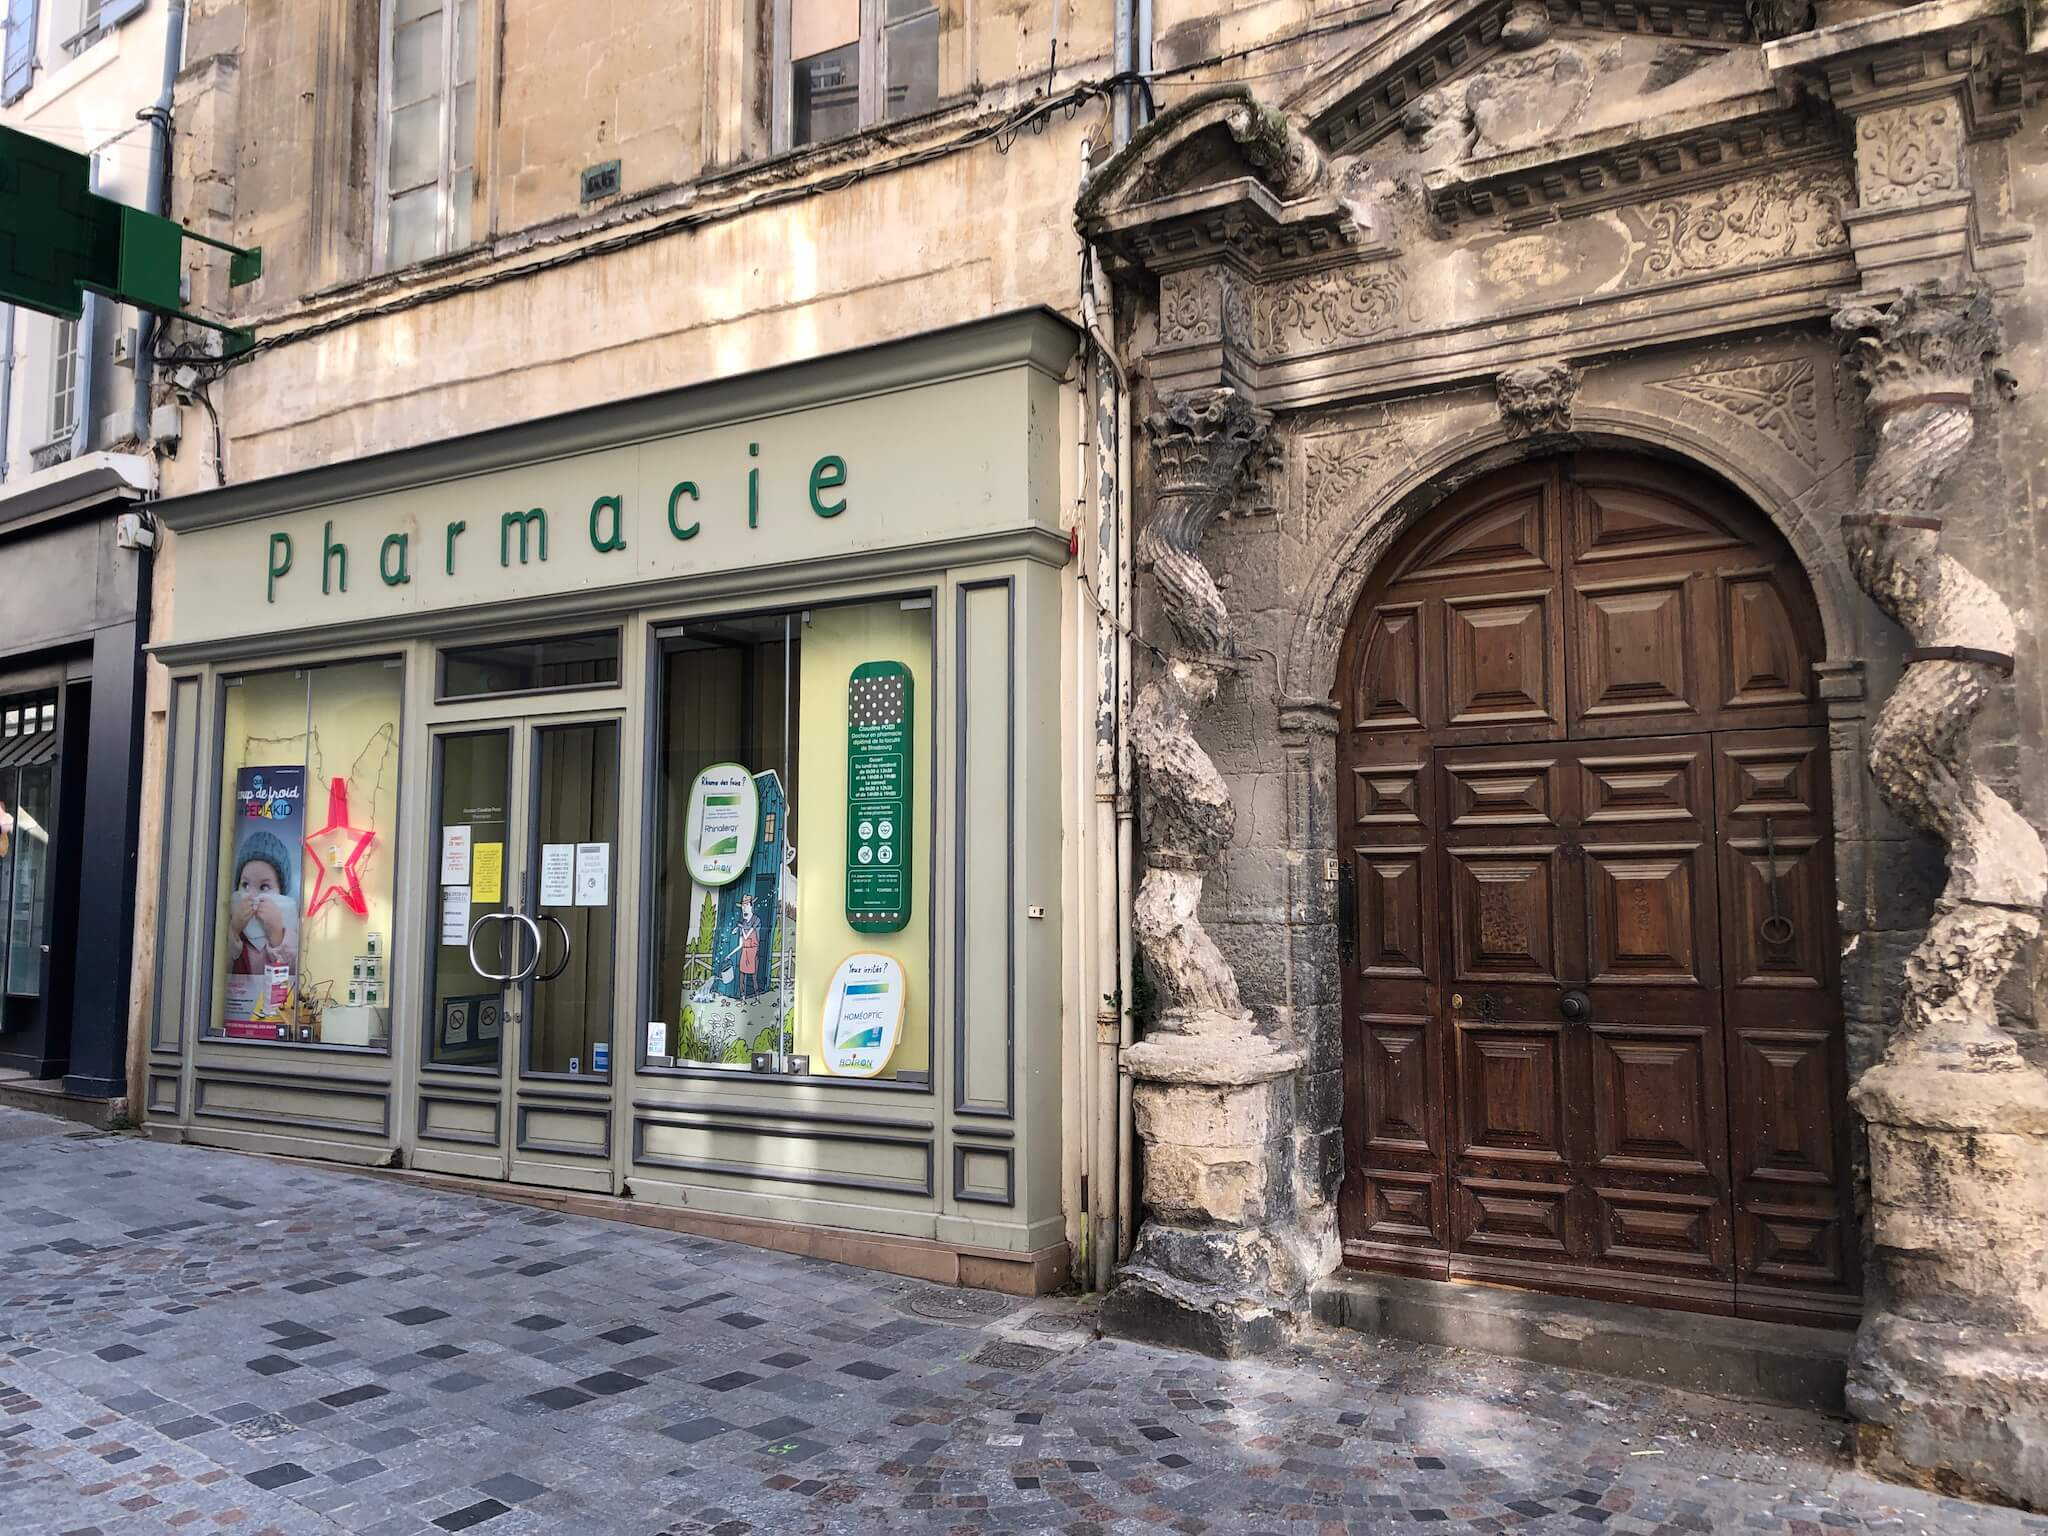 A pharmacie and door to a building on a street in Arles, France.